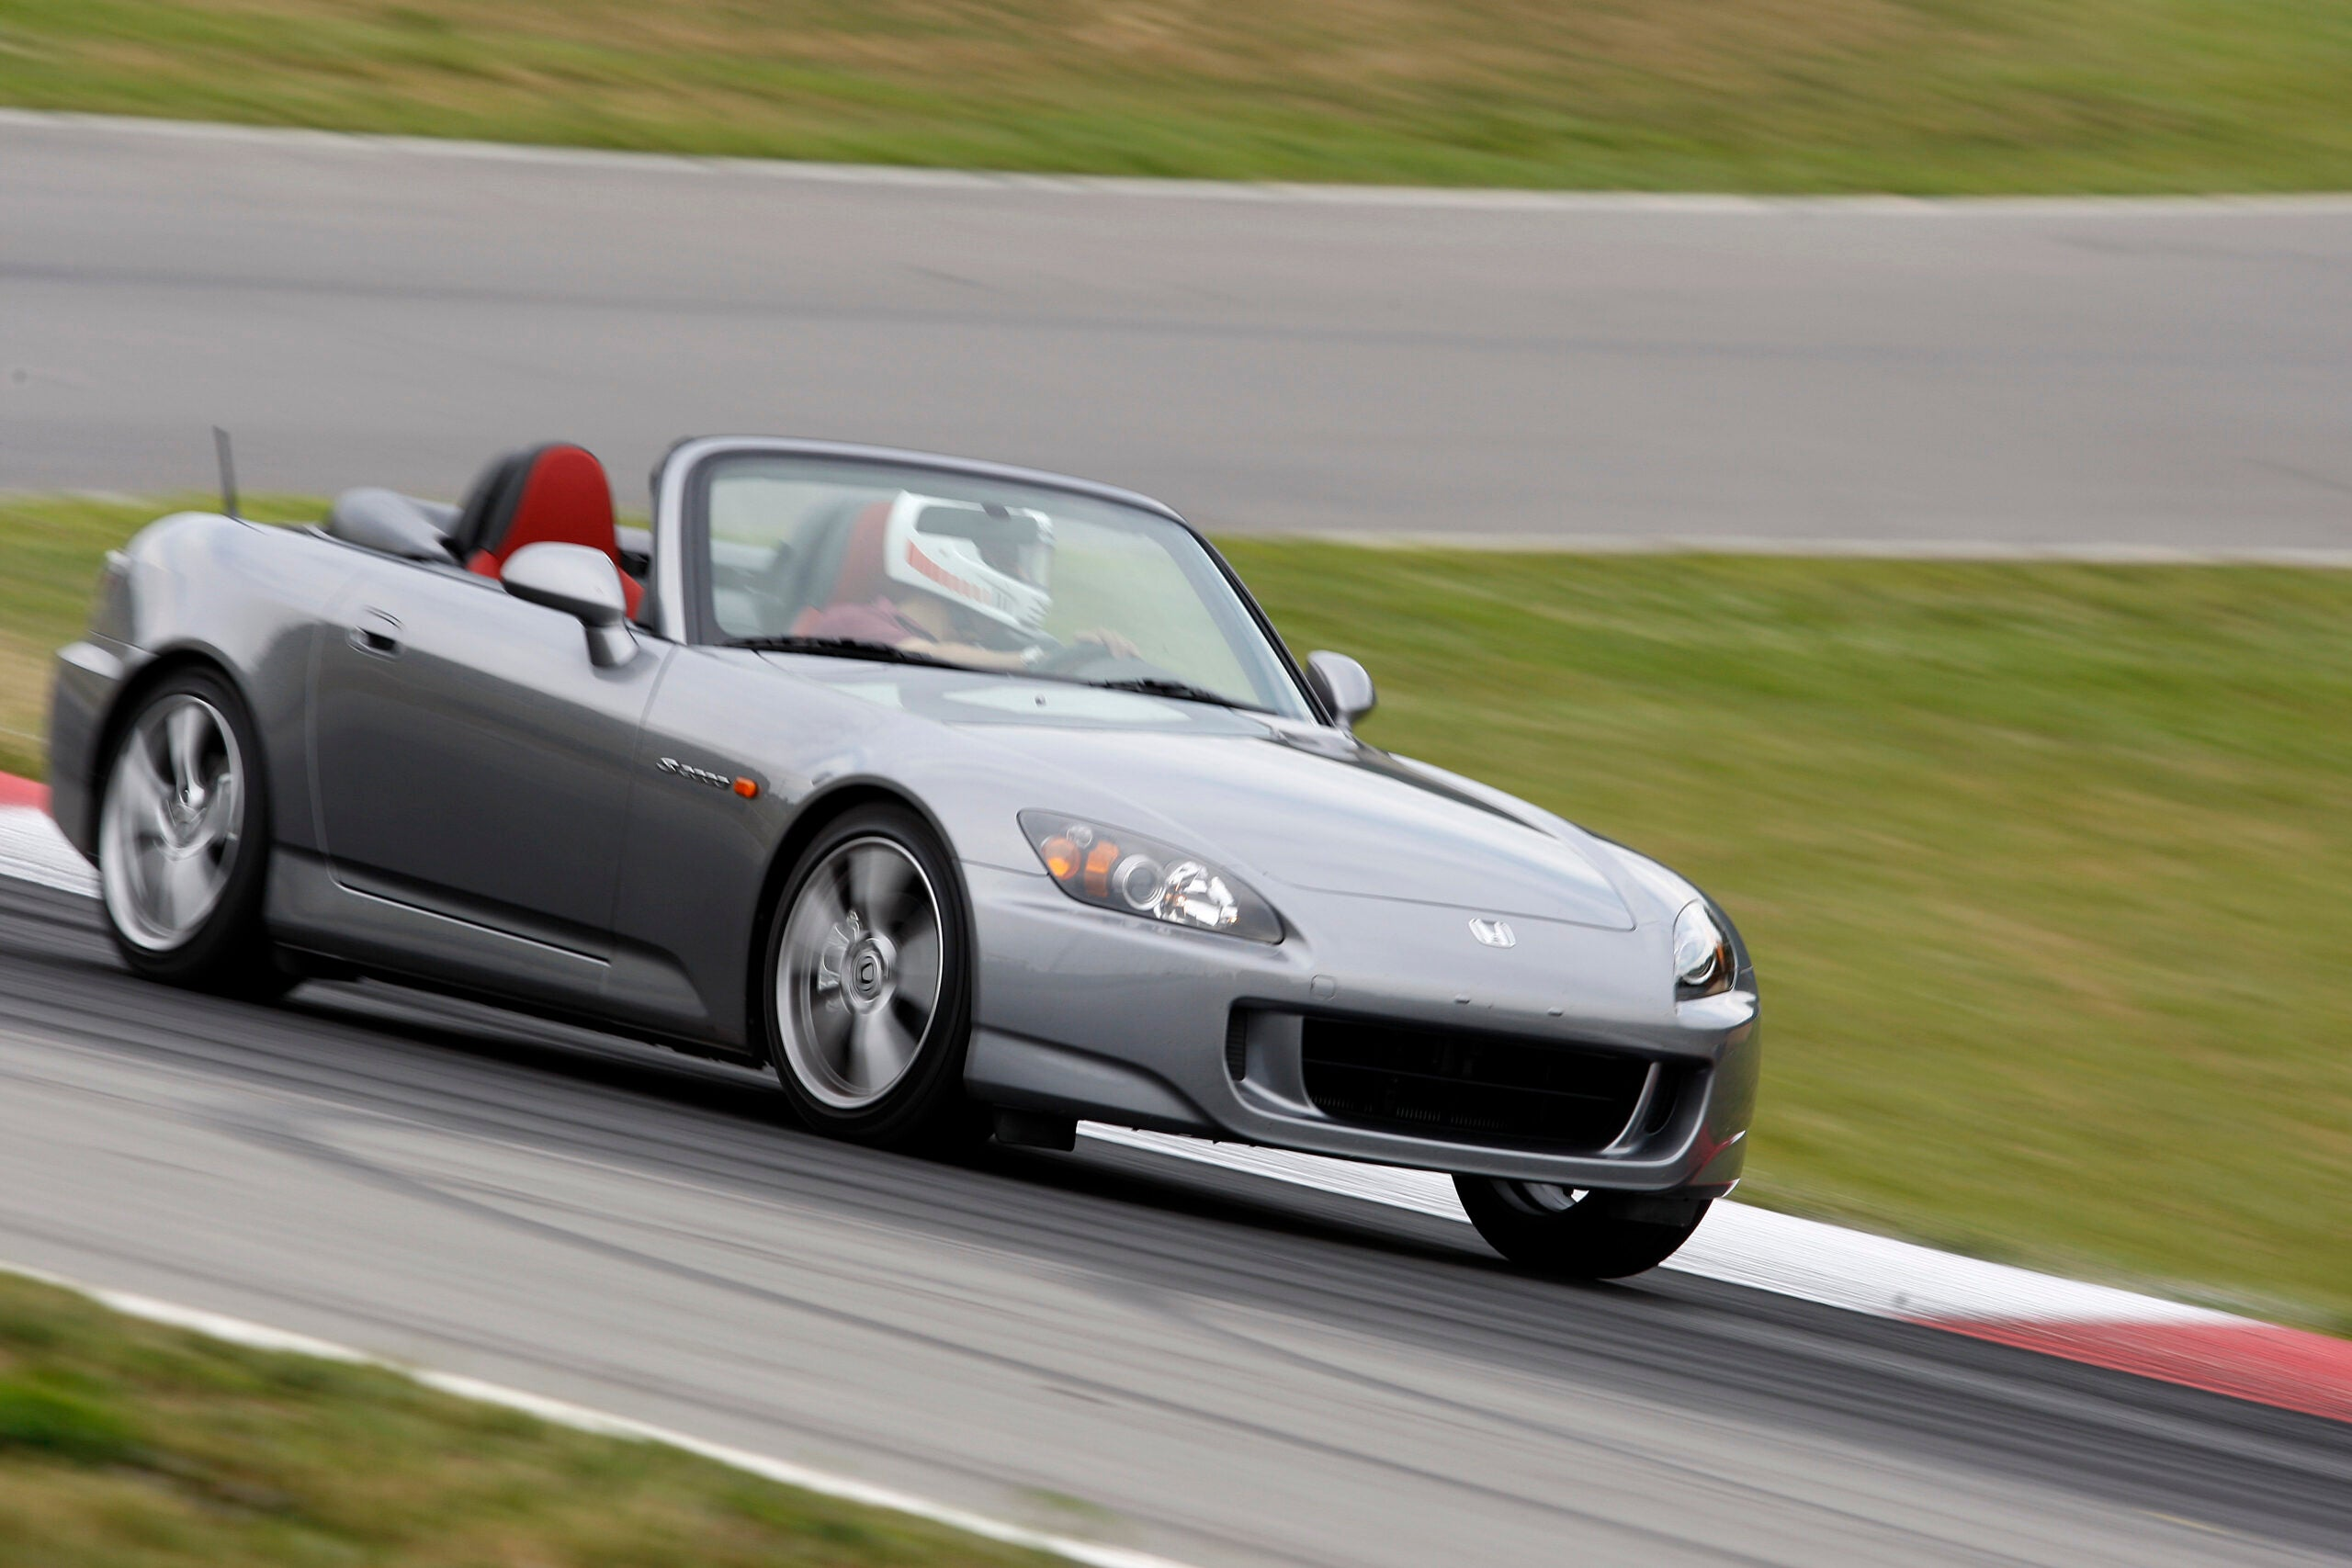 2009 Honda S2000 on track (front)